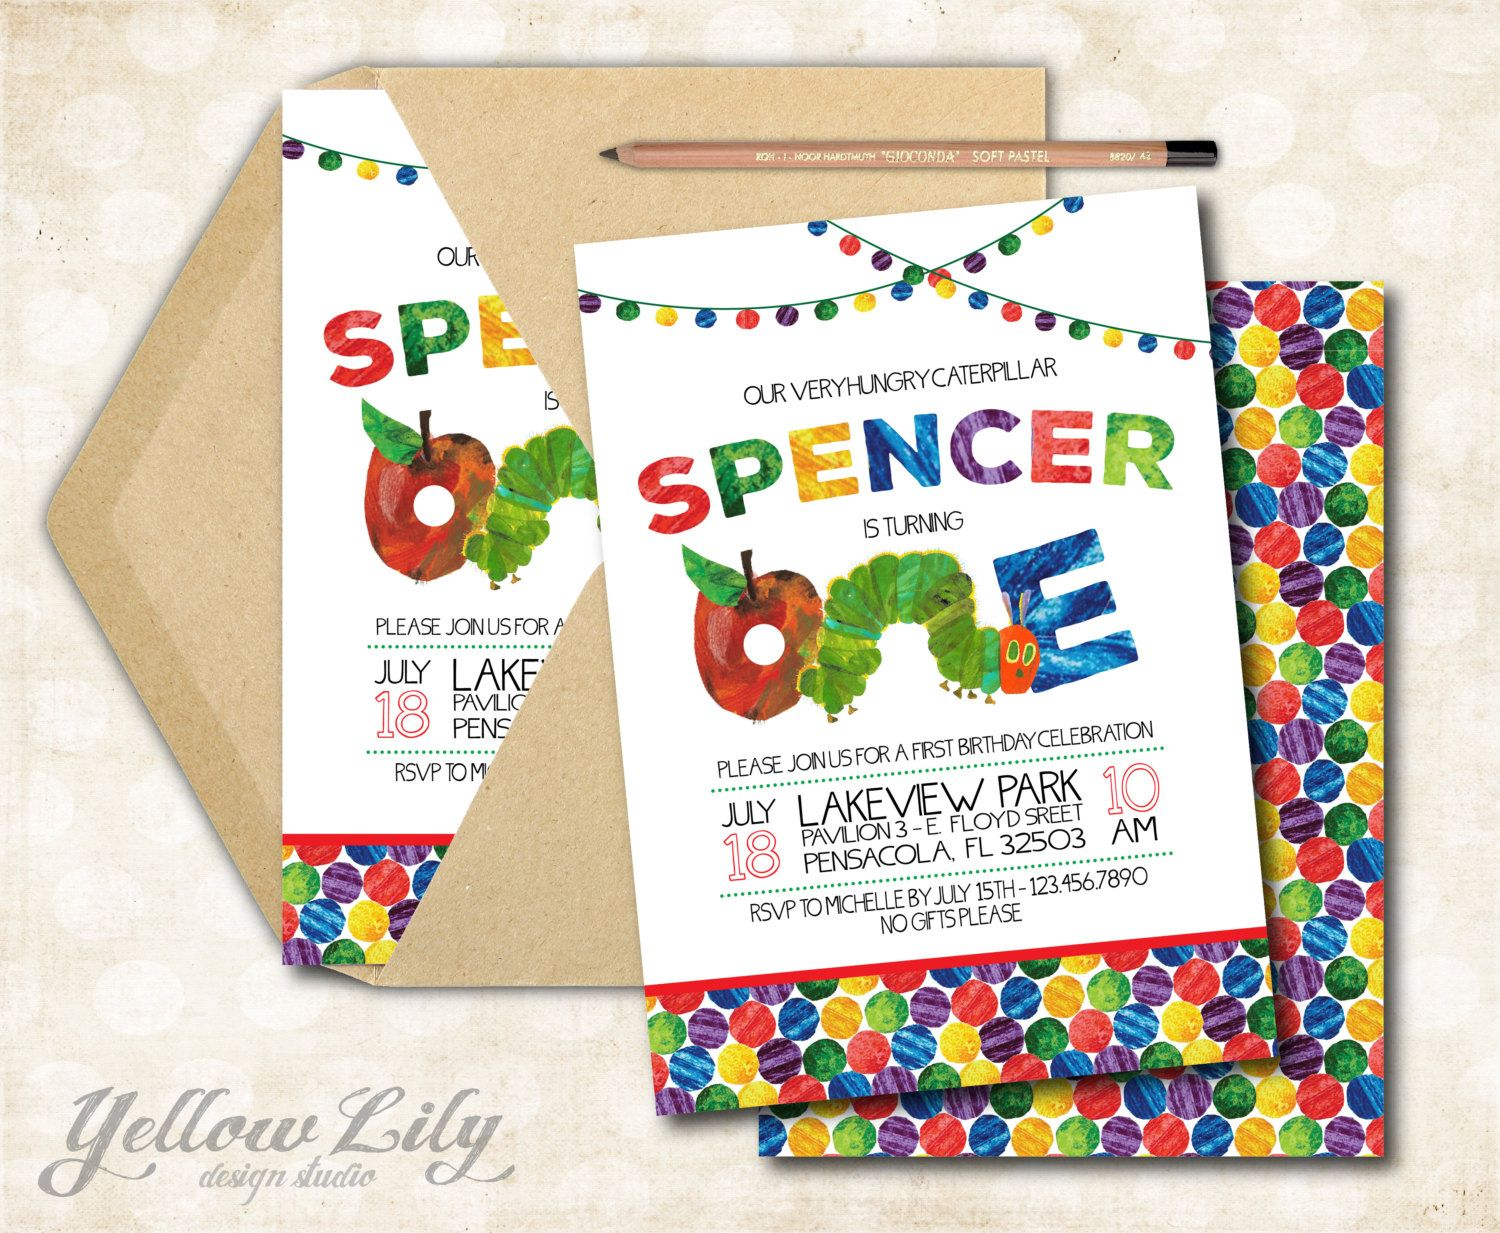 Very Hungry Caterpillar Birthday Invitation - DIY Party Printable ...